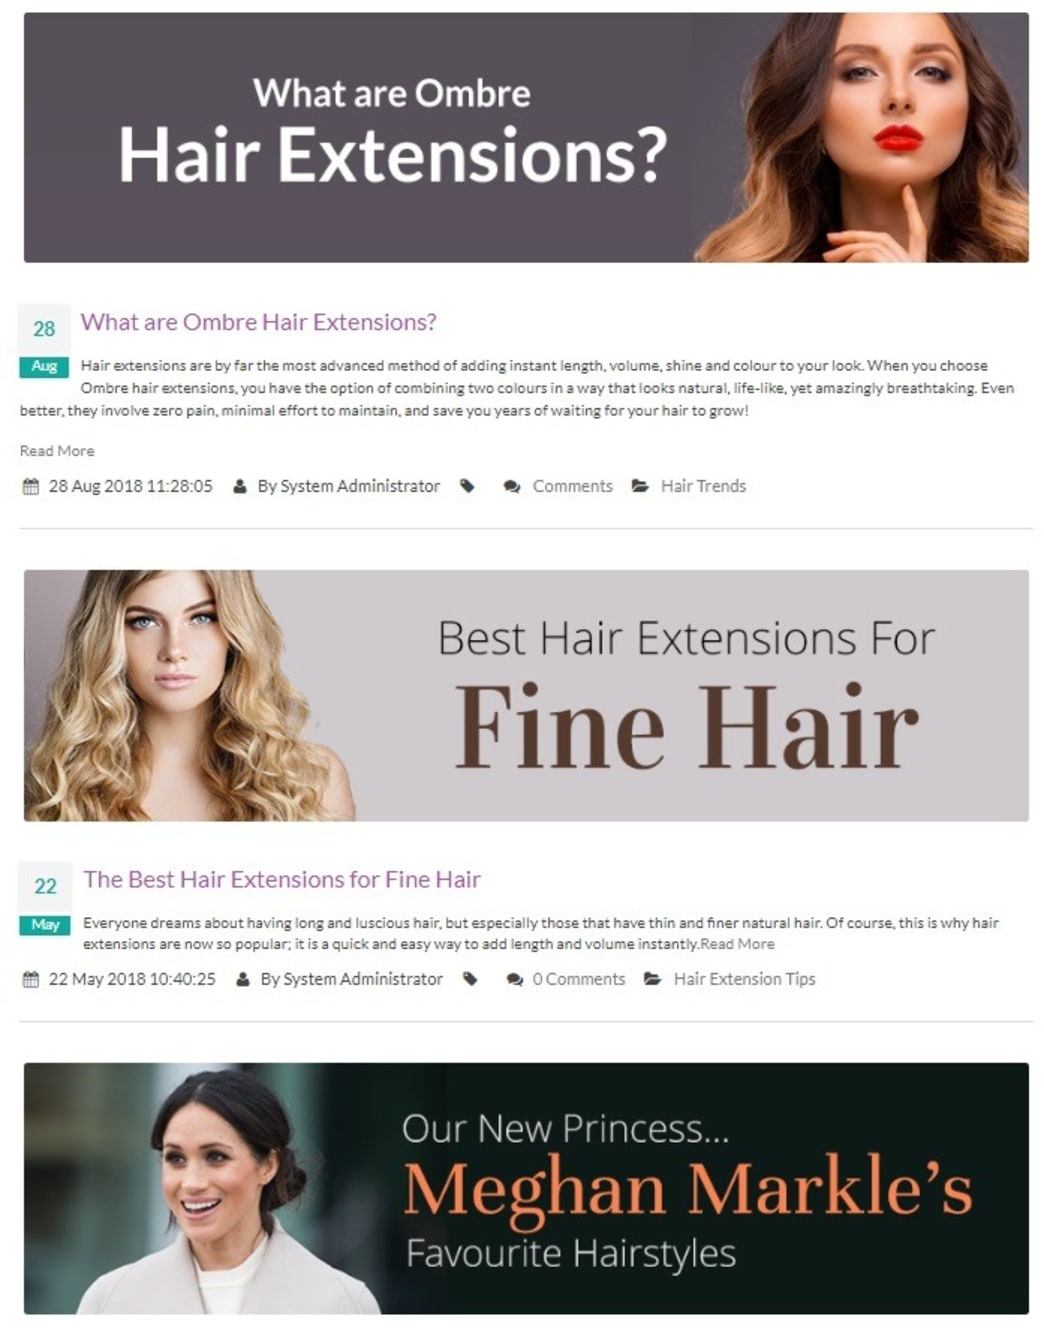 hair products online store blog